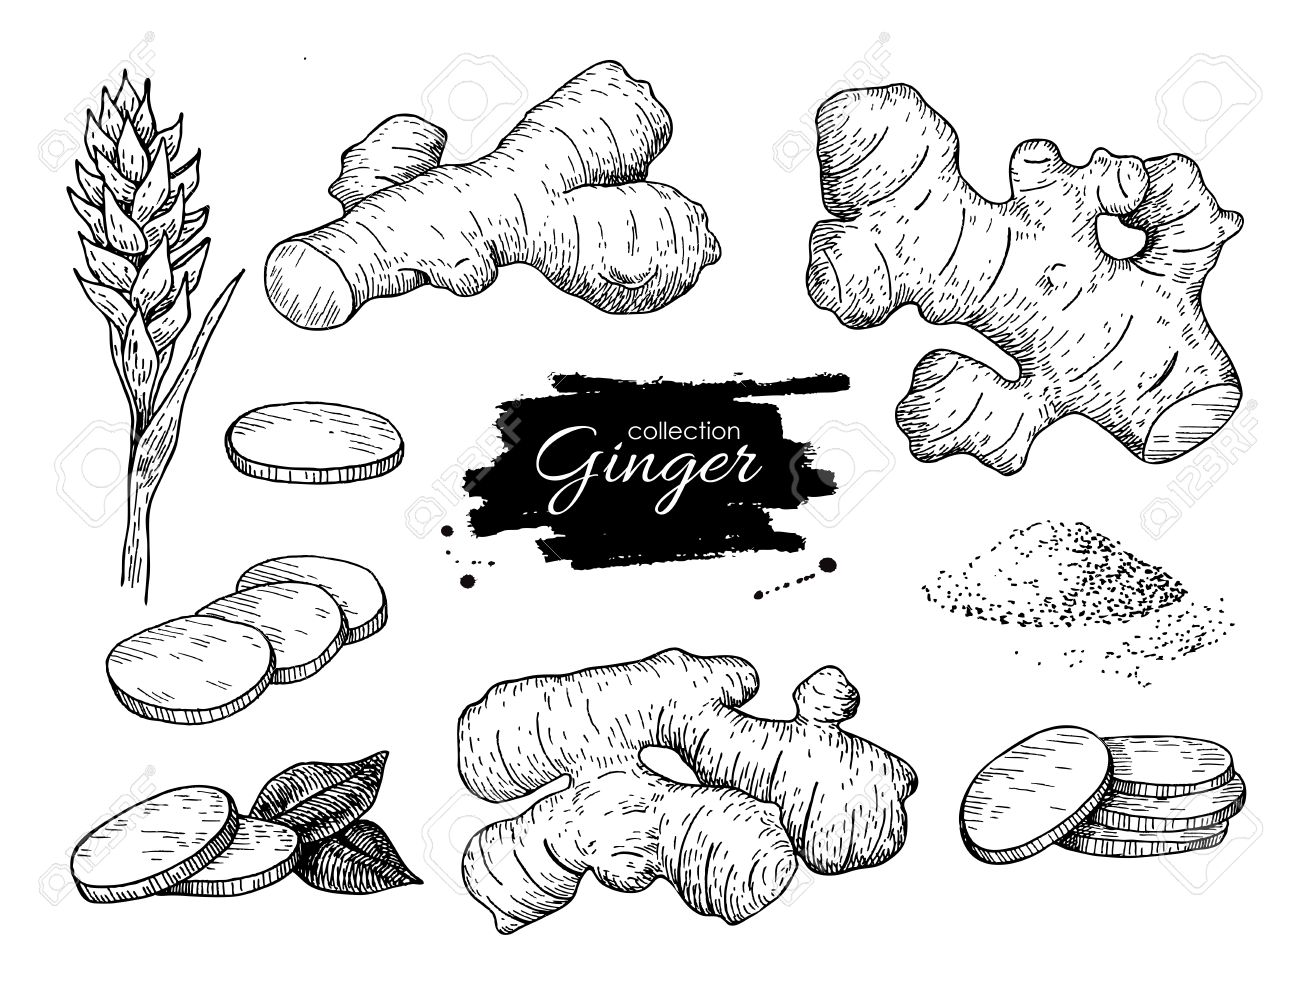 Vector hand drawn Ginger set. Root, ginger pieces and flower. Engraved style illustration. Herbal spice. Detox food ingredient. - 57182527